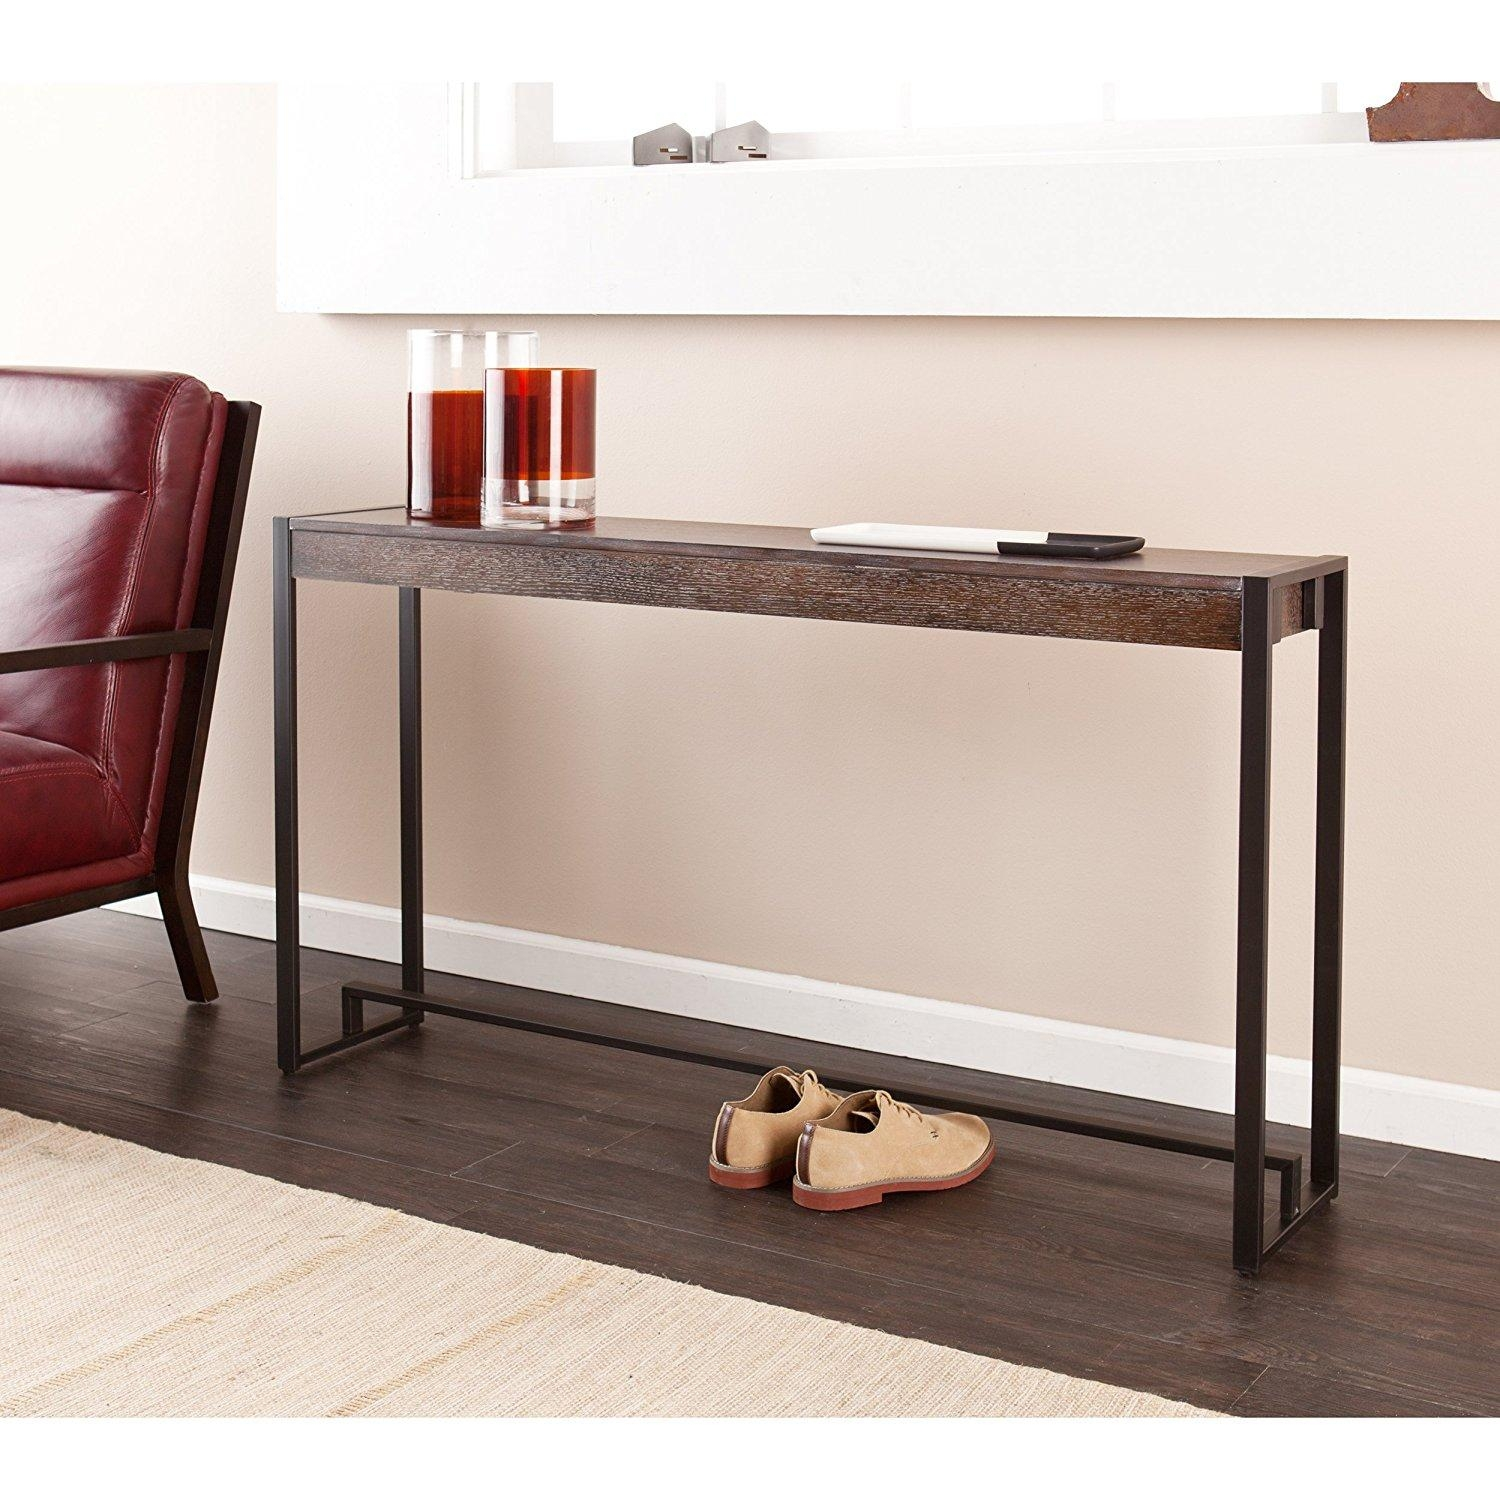 Sofas Center : Sofa Back Table Console Tables Ikea Black At Home Throughout Sofa Back Console (Image 19 of 20)